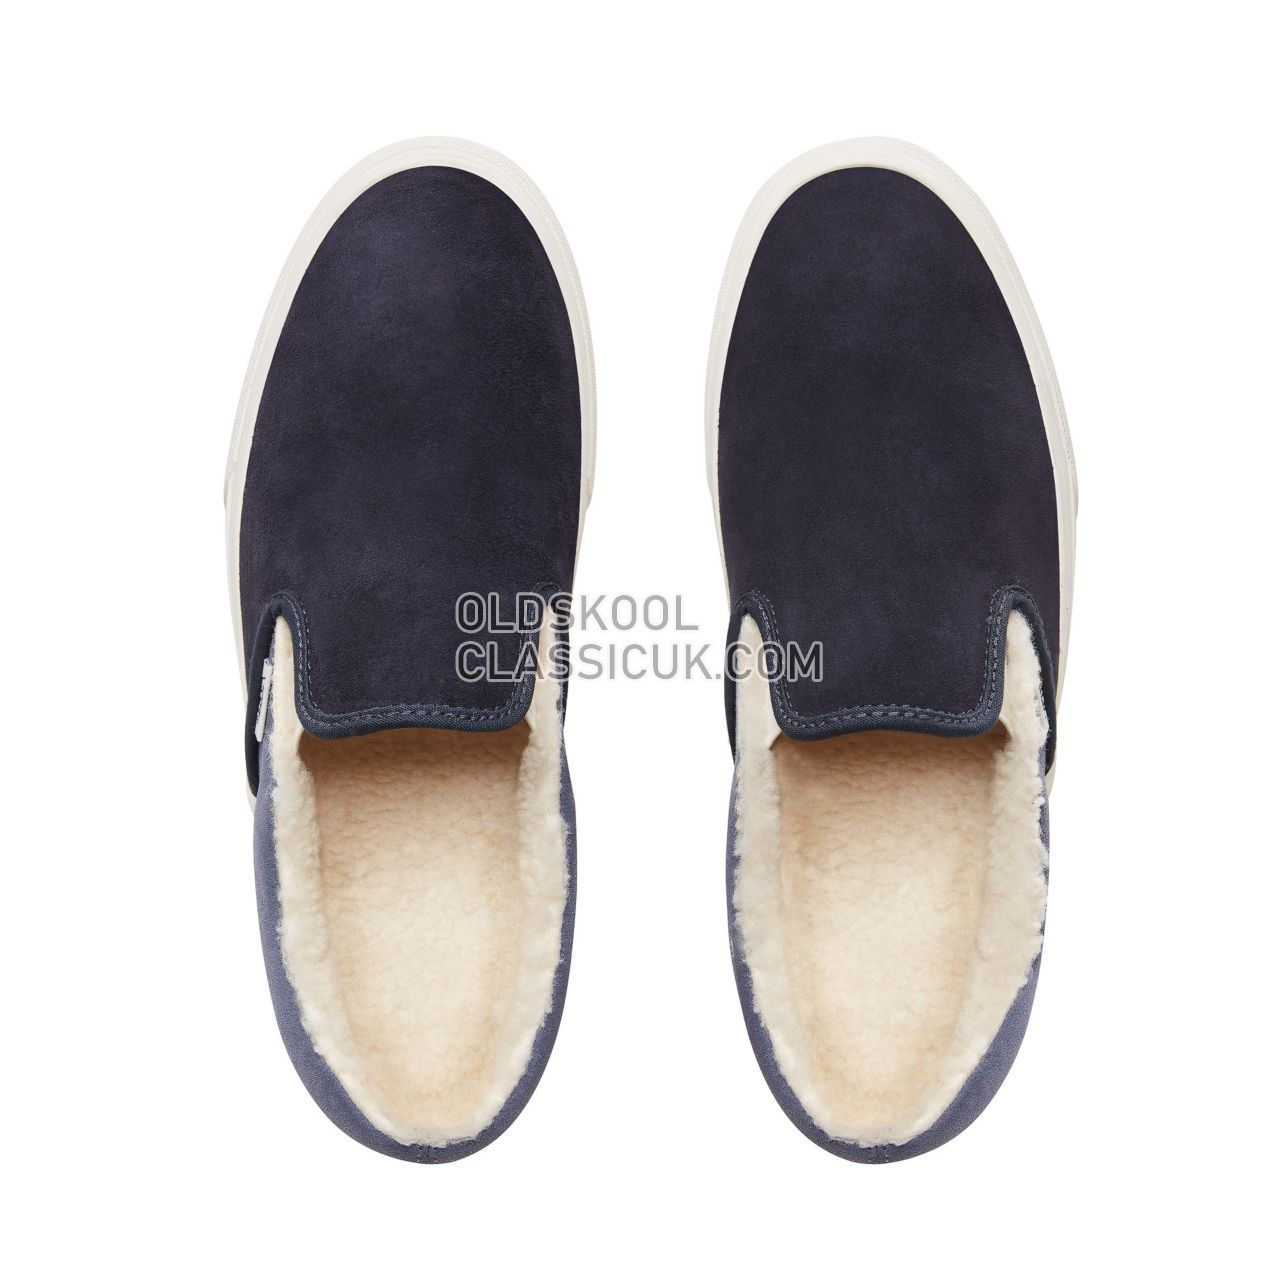 Vans Suede and Sherpa Classic Slip-on shoes Mens (Suede/Sherpa) Sky Captain/Grisaille VN0A38F7UM1 Shoes